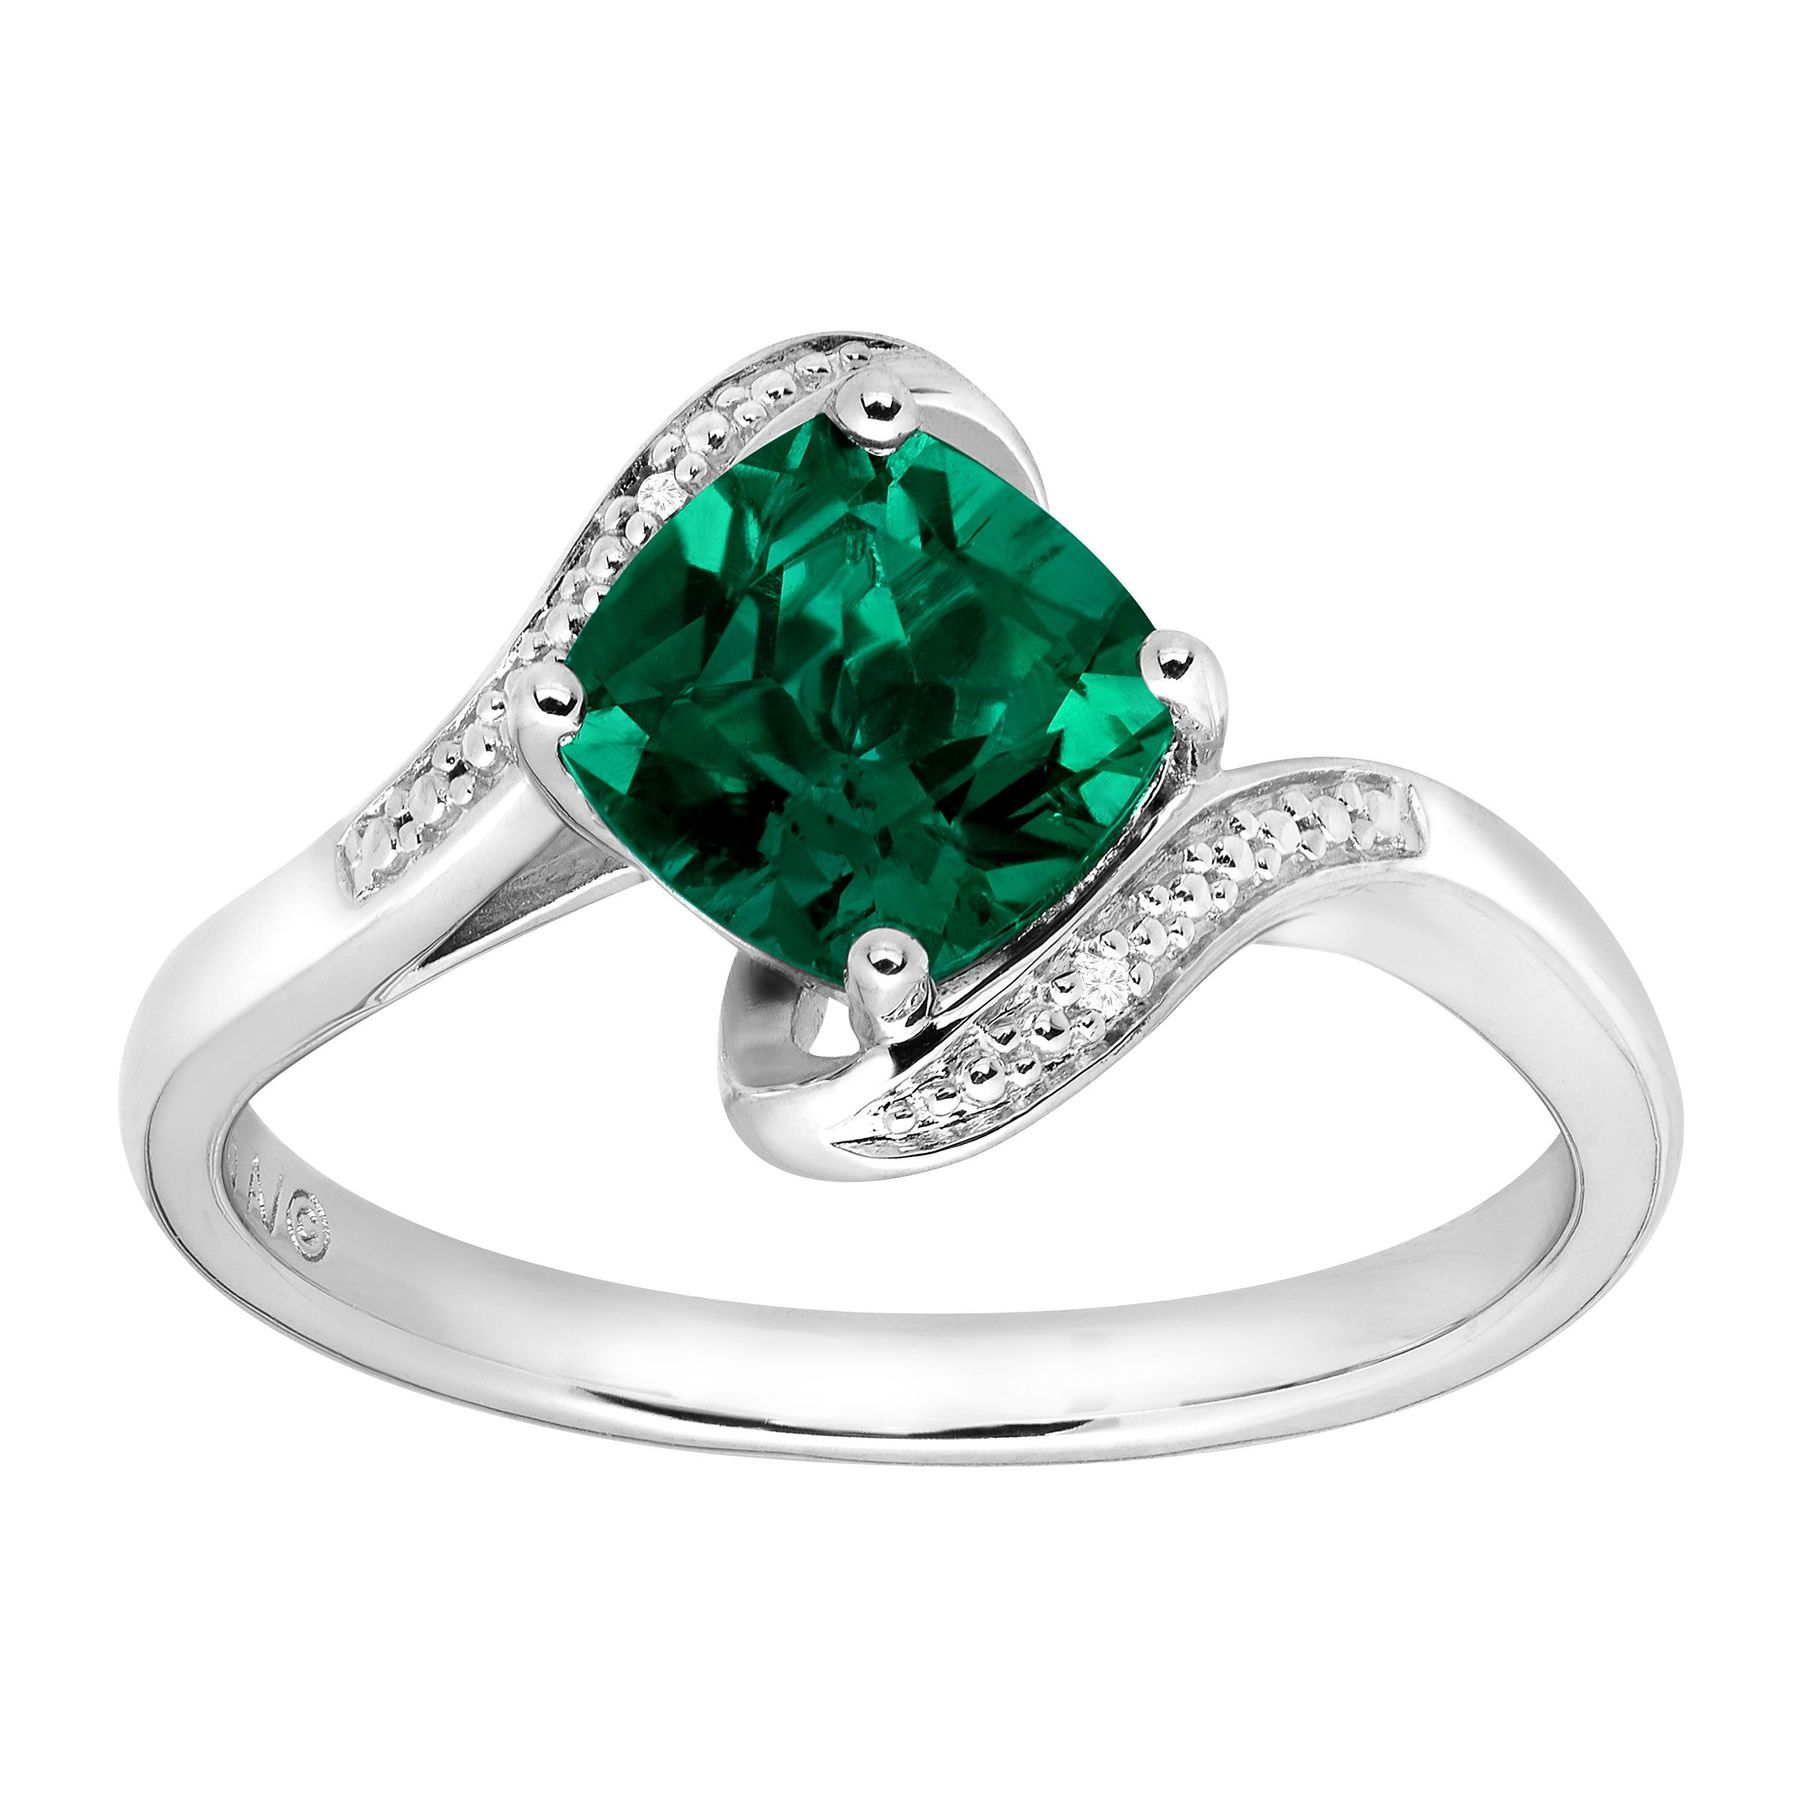 ewan white diamondere gold birthstone in rings may wg emerald jewelry for r ring d emrald women em